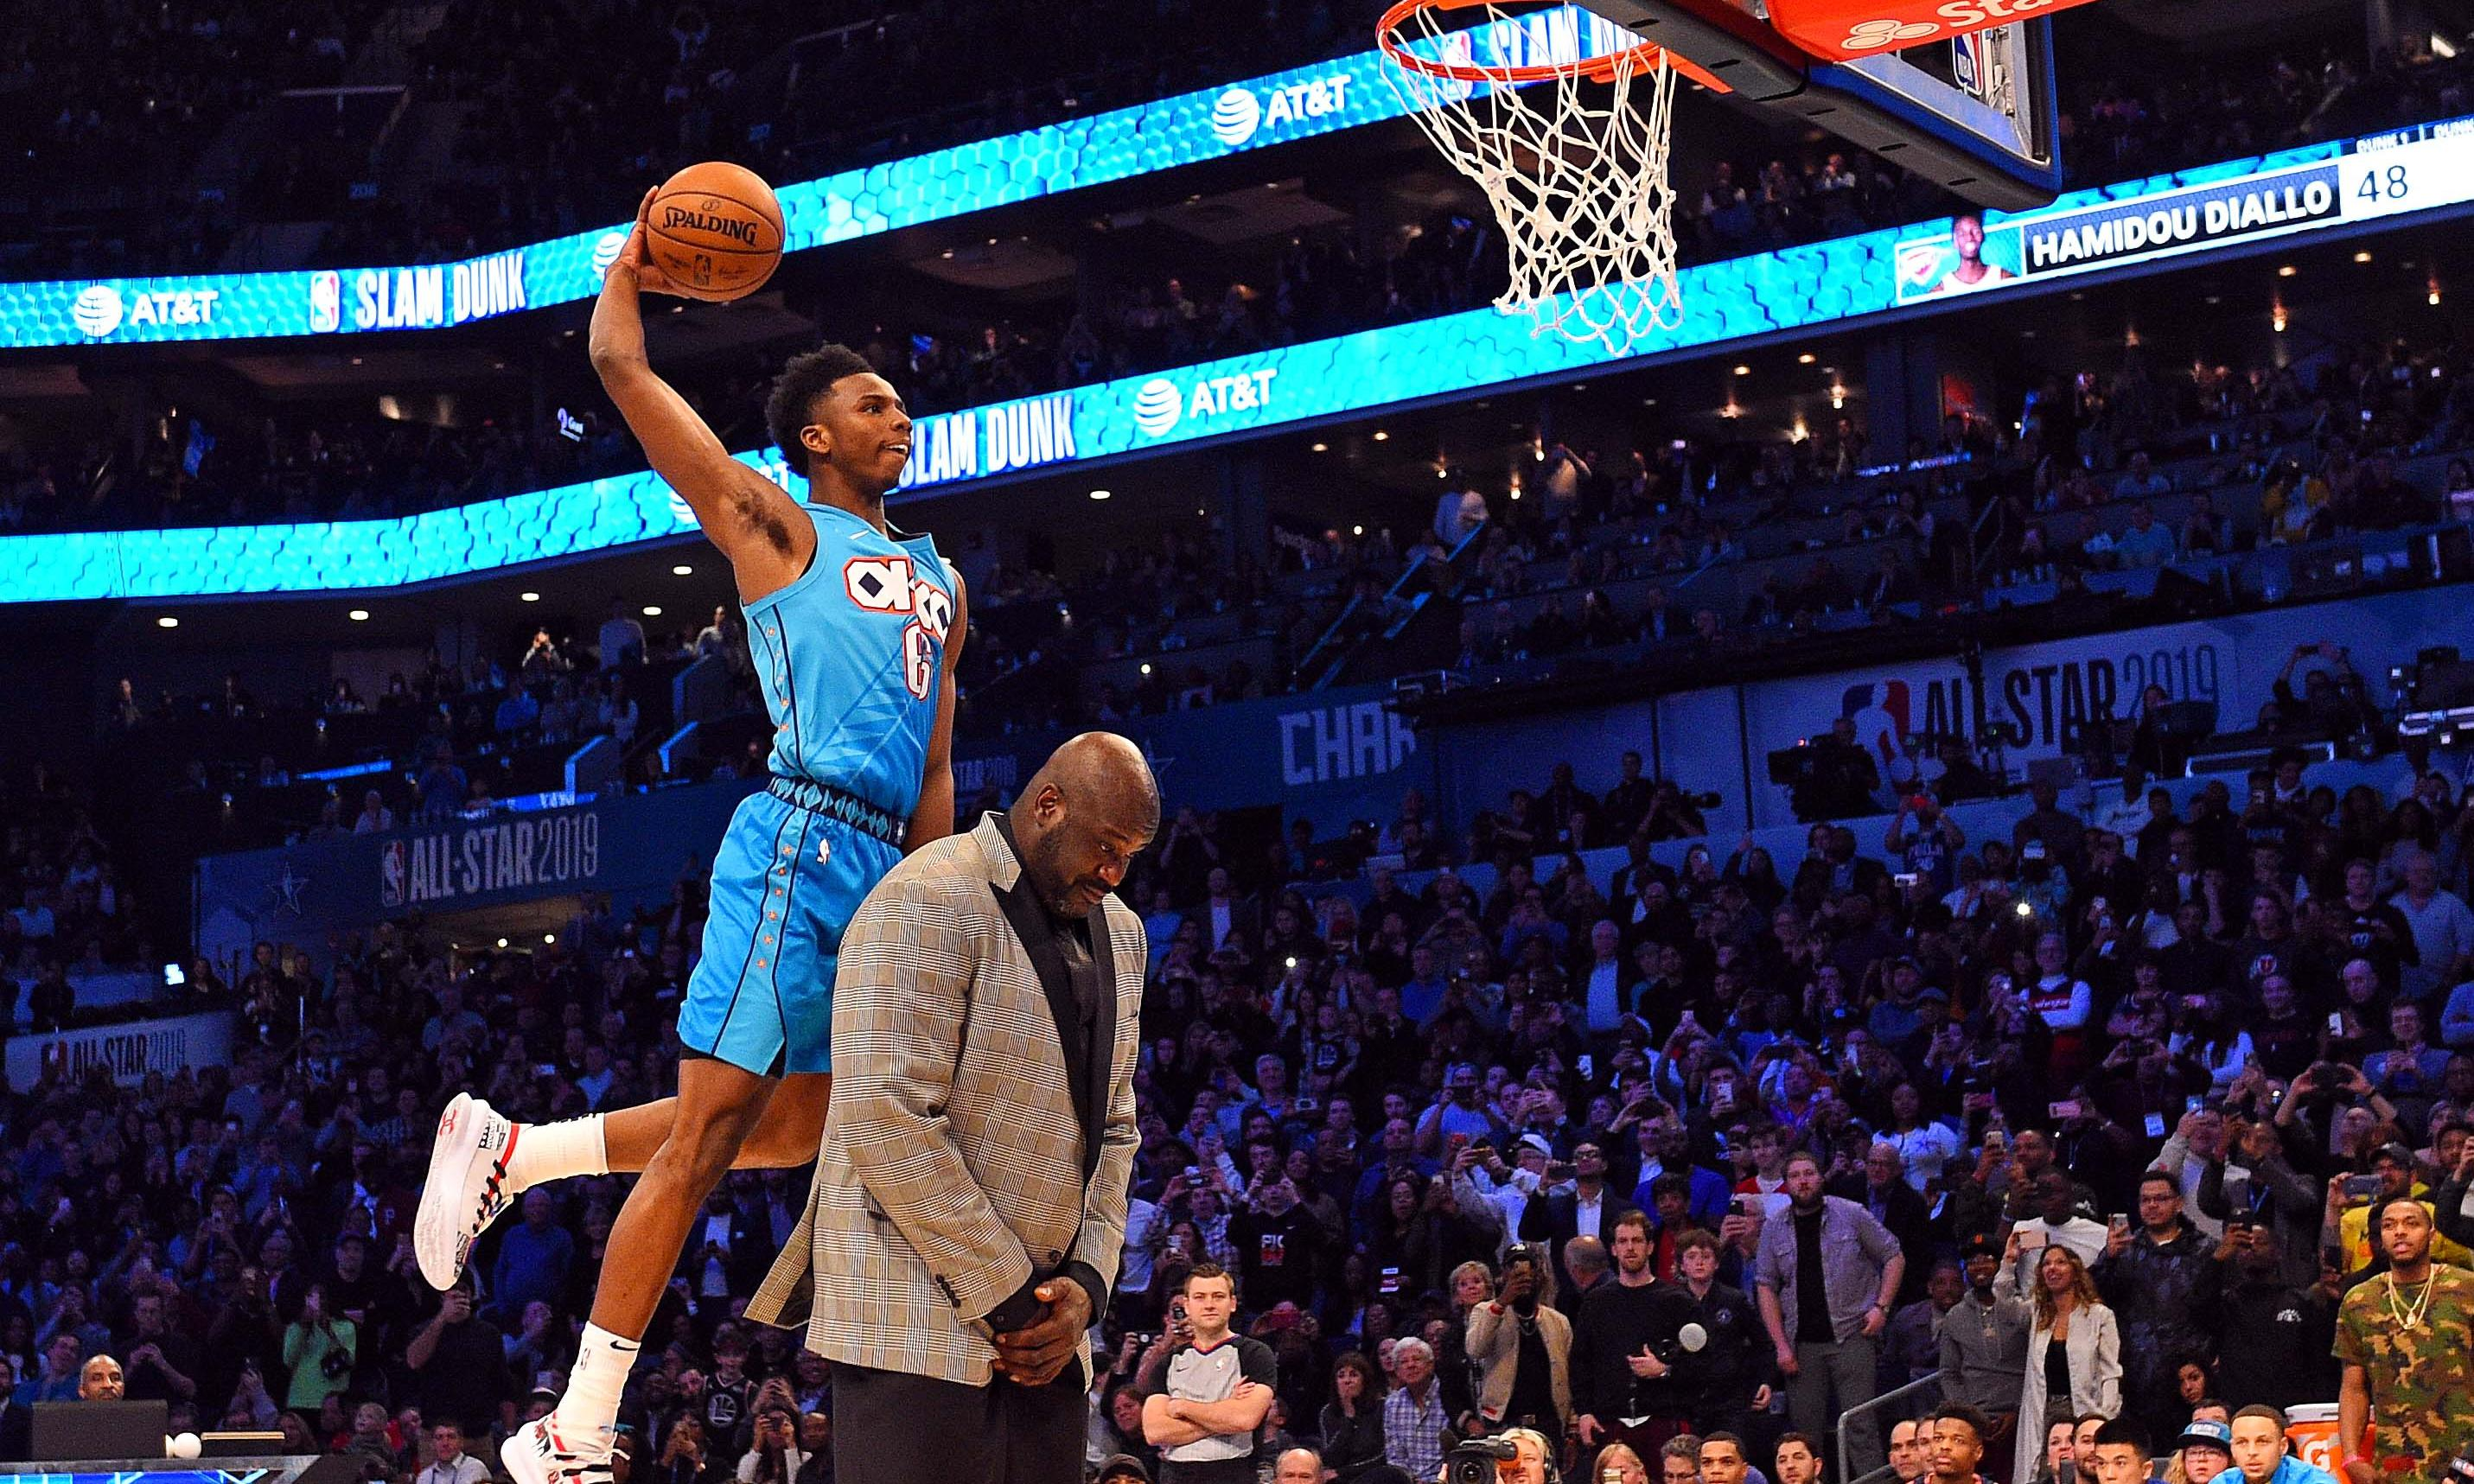 Diallo leaps over Shaq to win NBA slam-dunk contest as Harris shocks Steph Curry